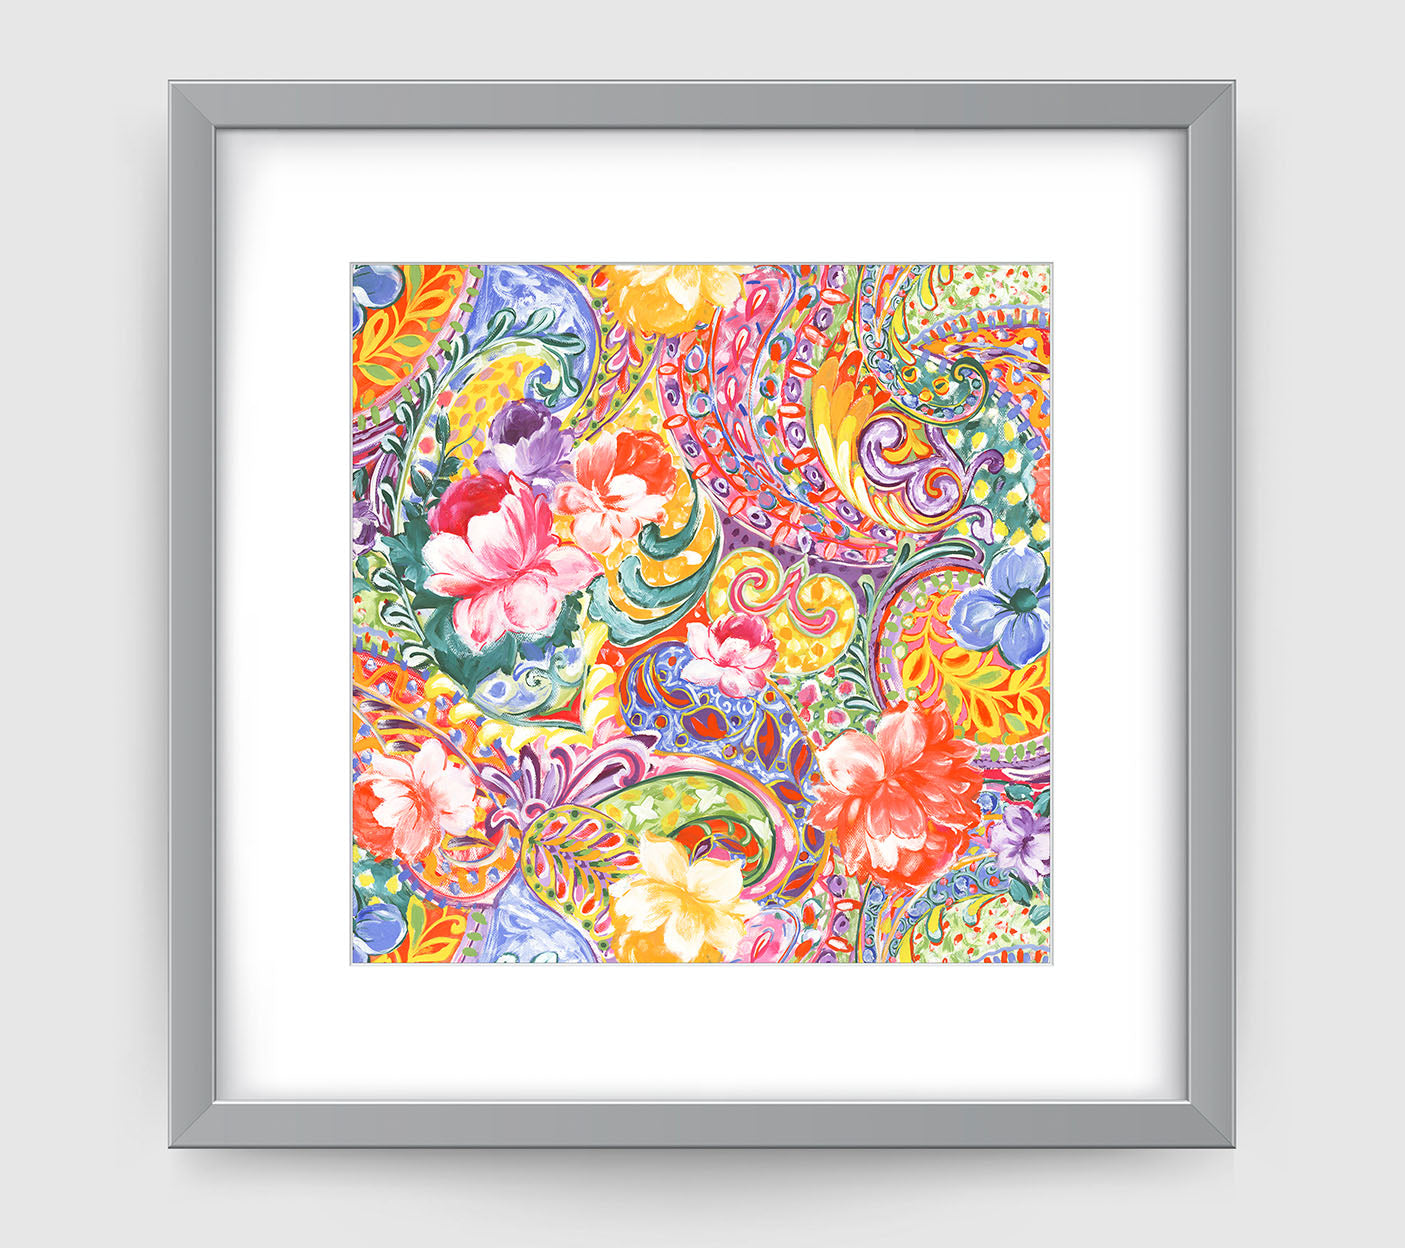 Indienne Art Print - Floral Art Wall Decor Collection-Di Lewis